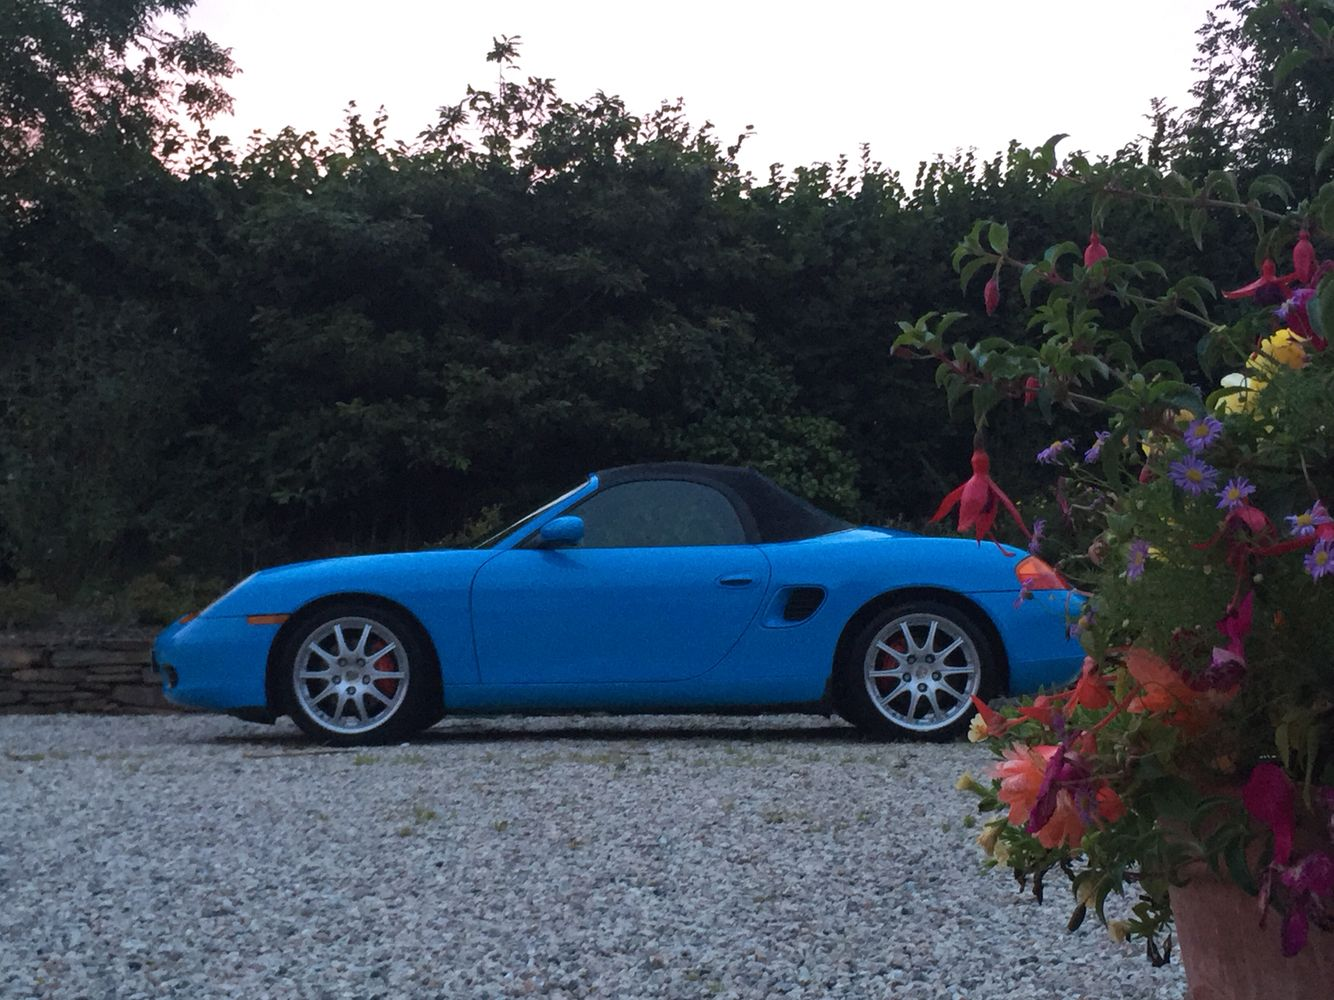 my own Porsche Boxster S 2002 in riviera blue are there any other? let me know